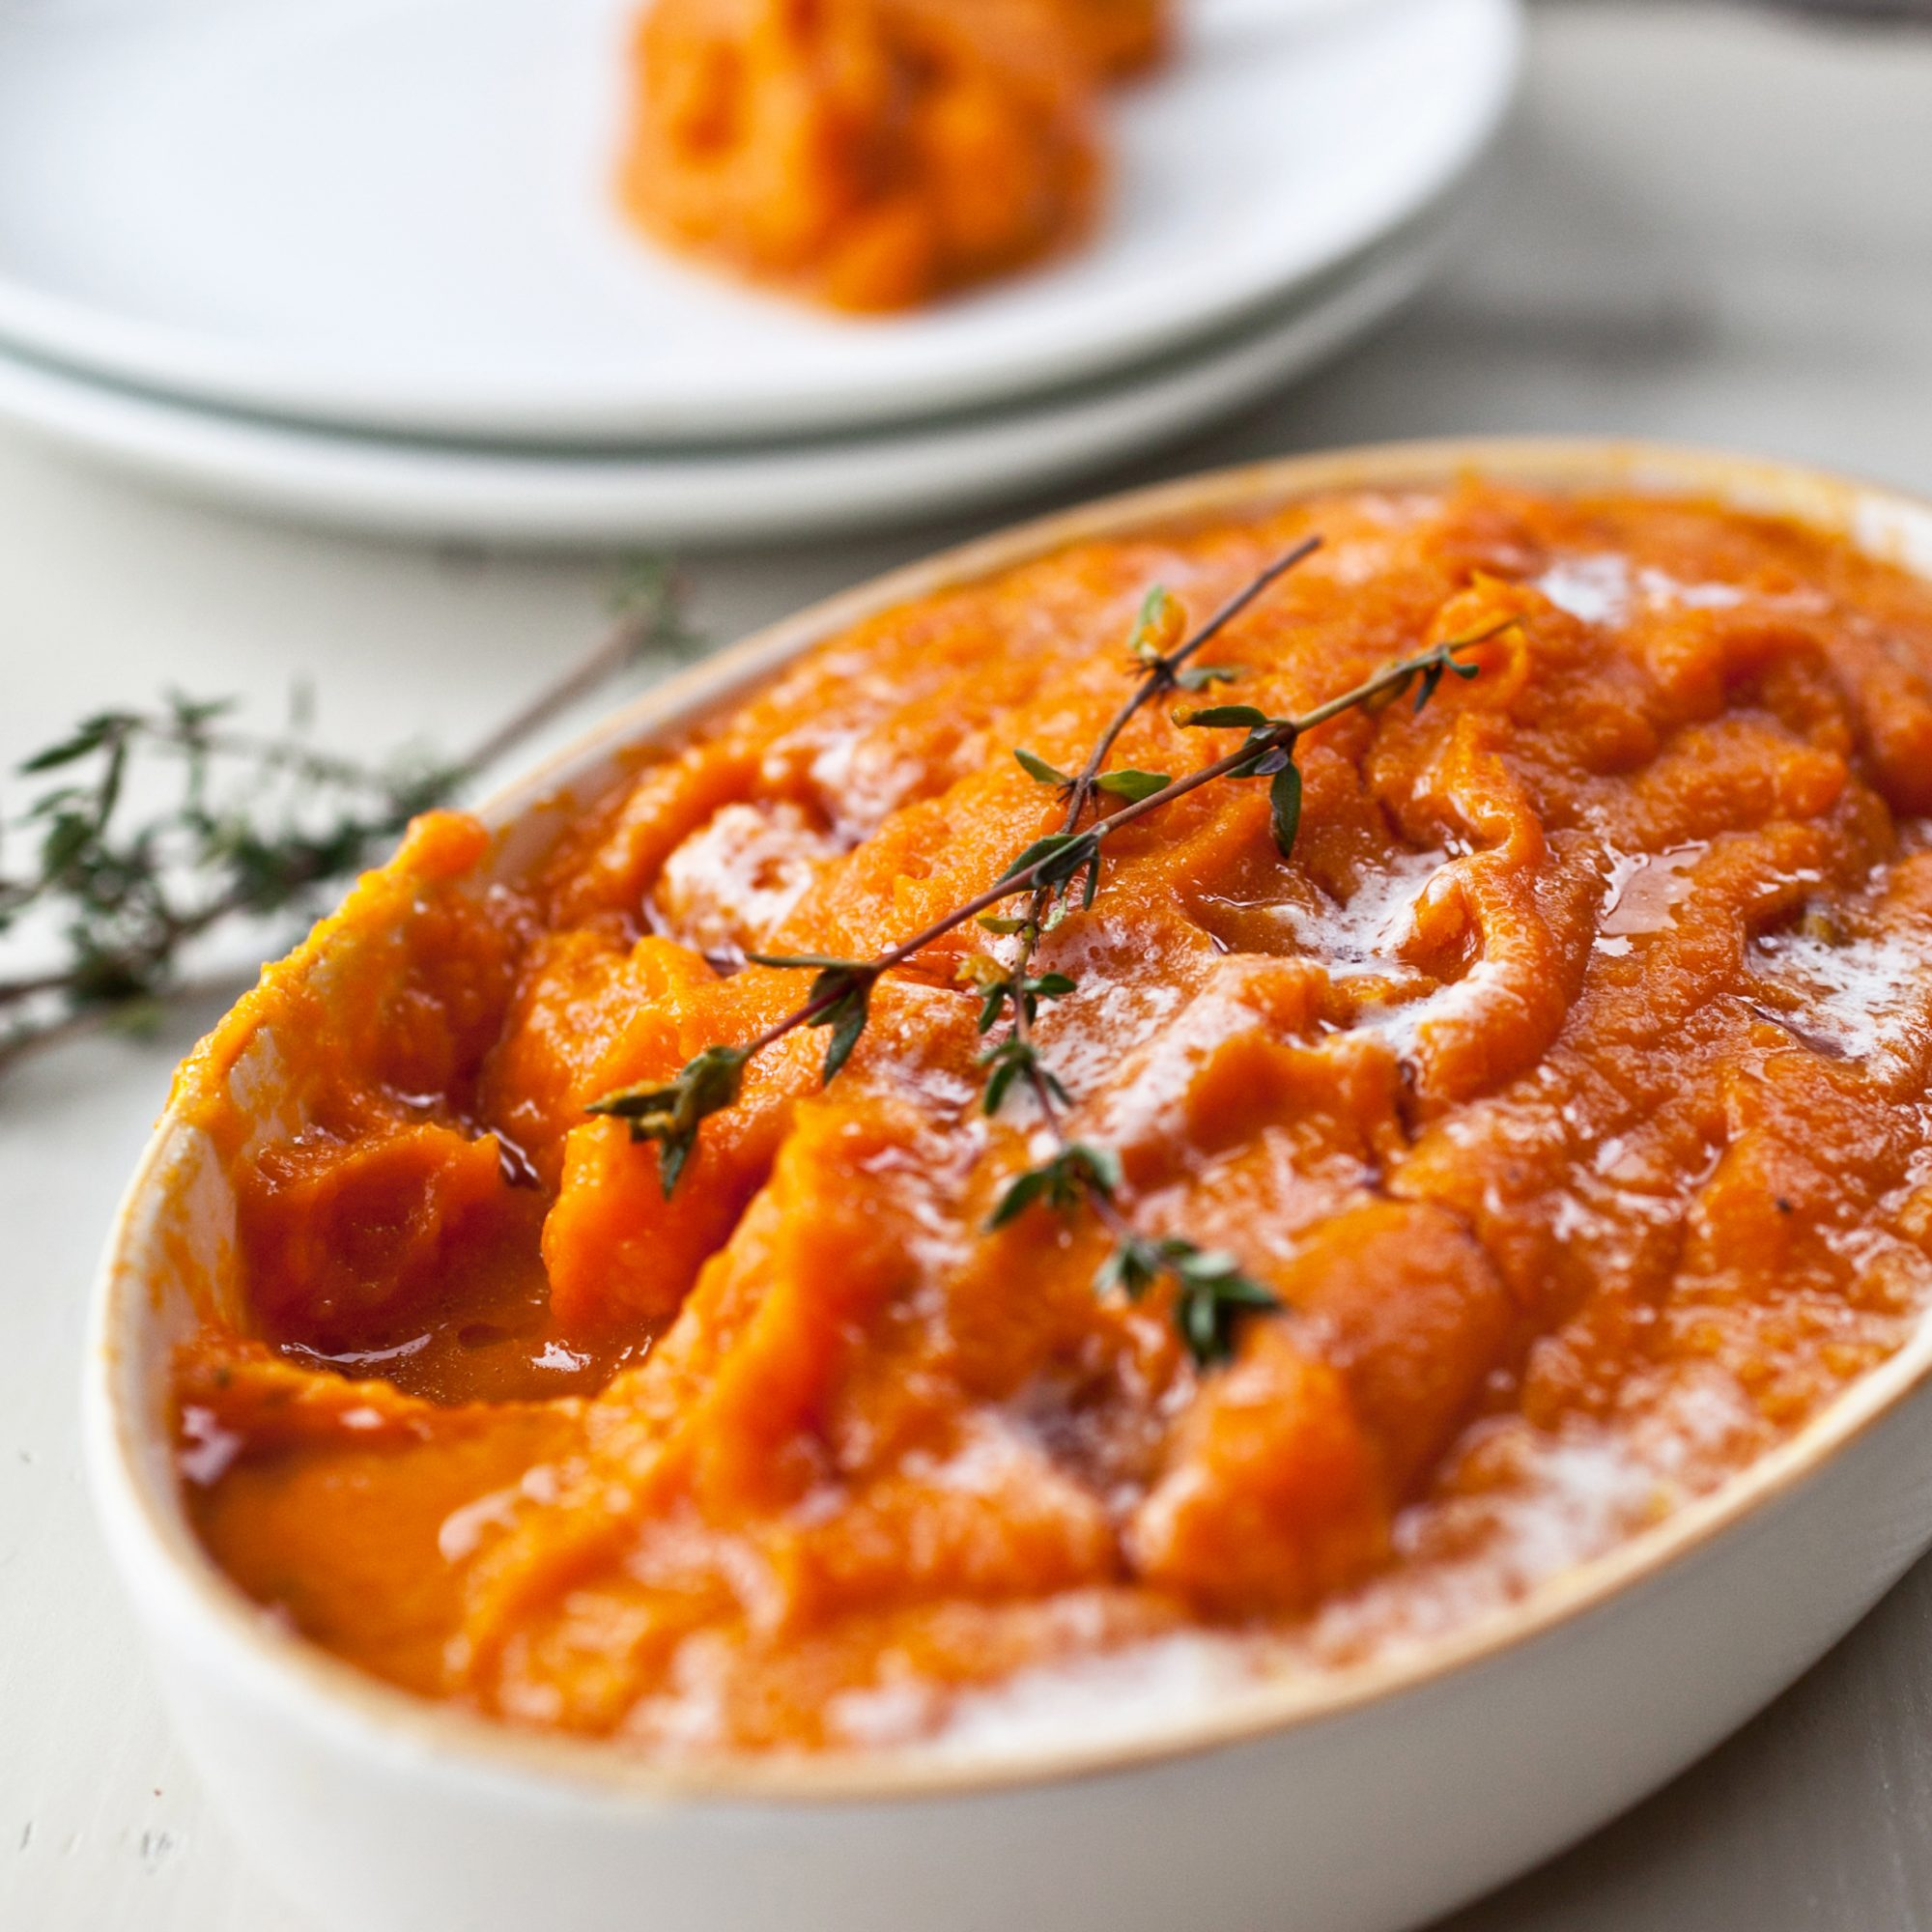 Winter Squash and Carrot Puree